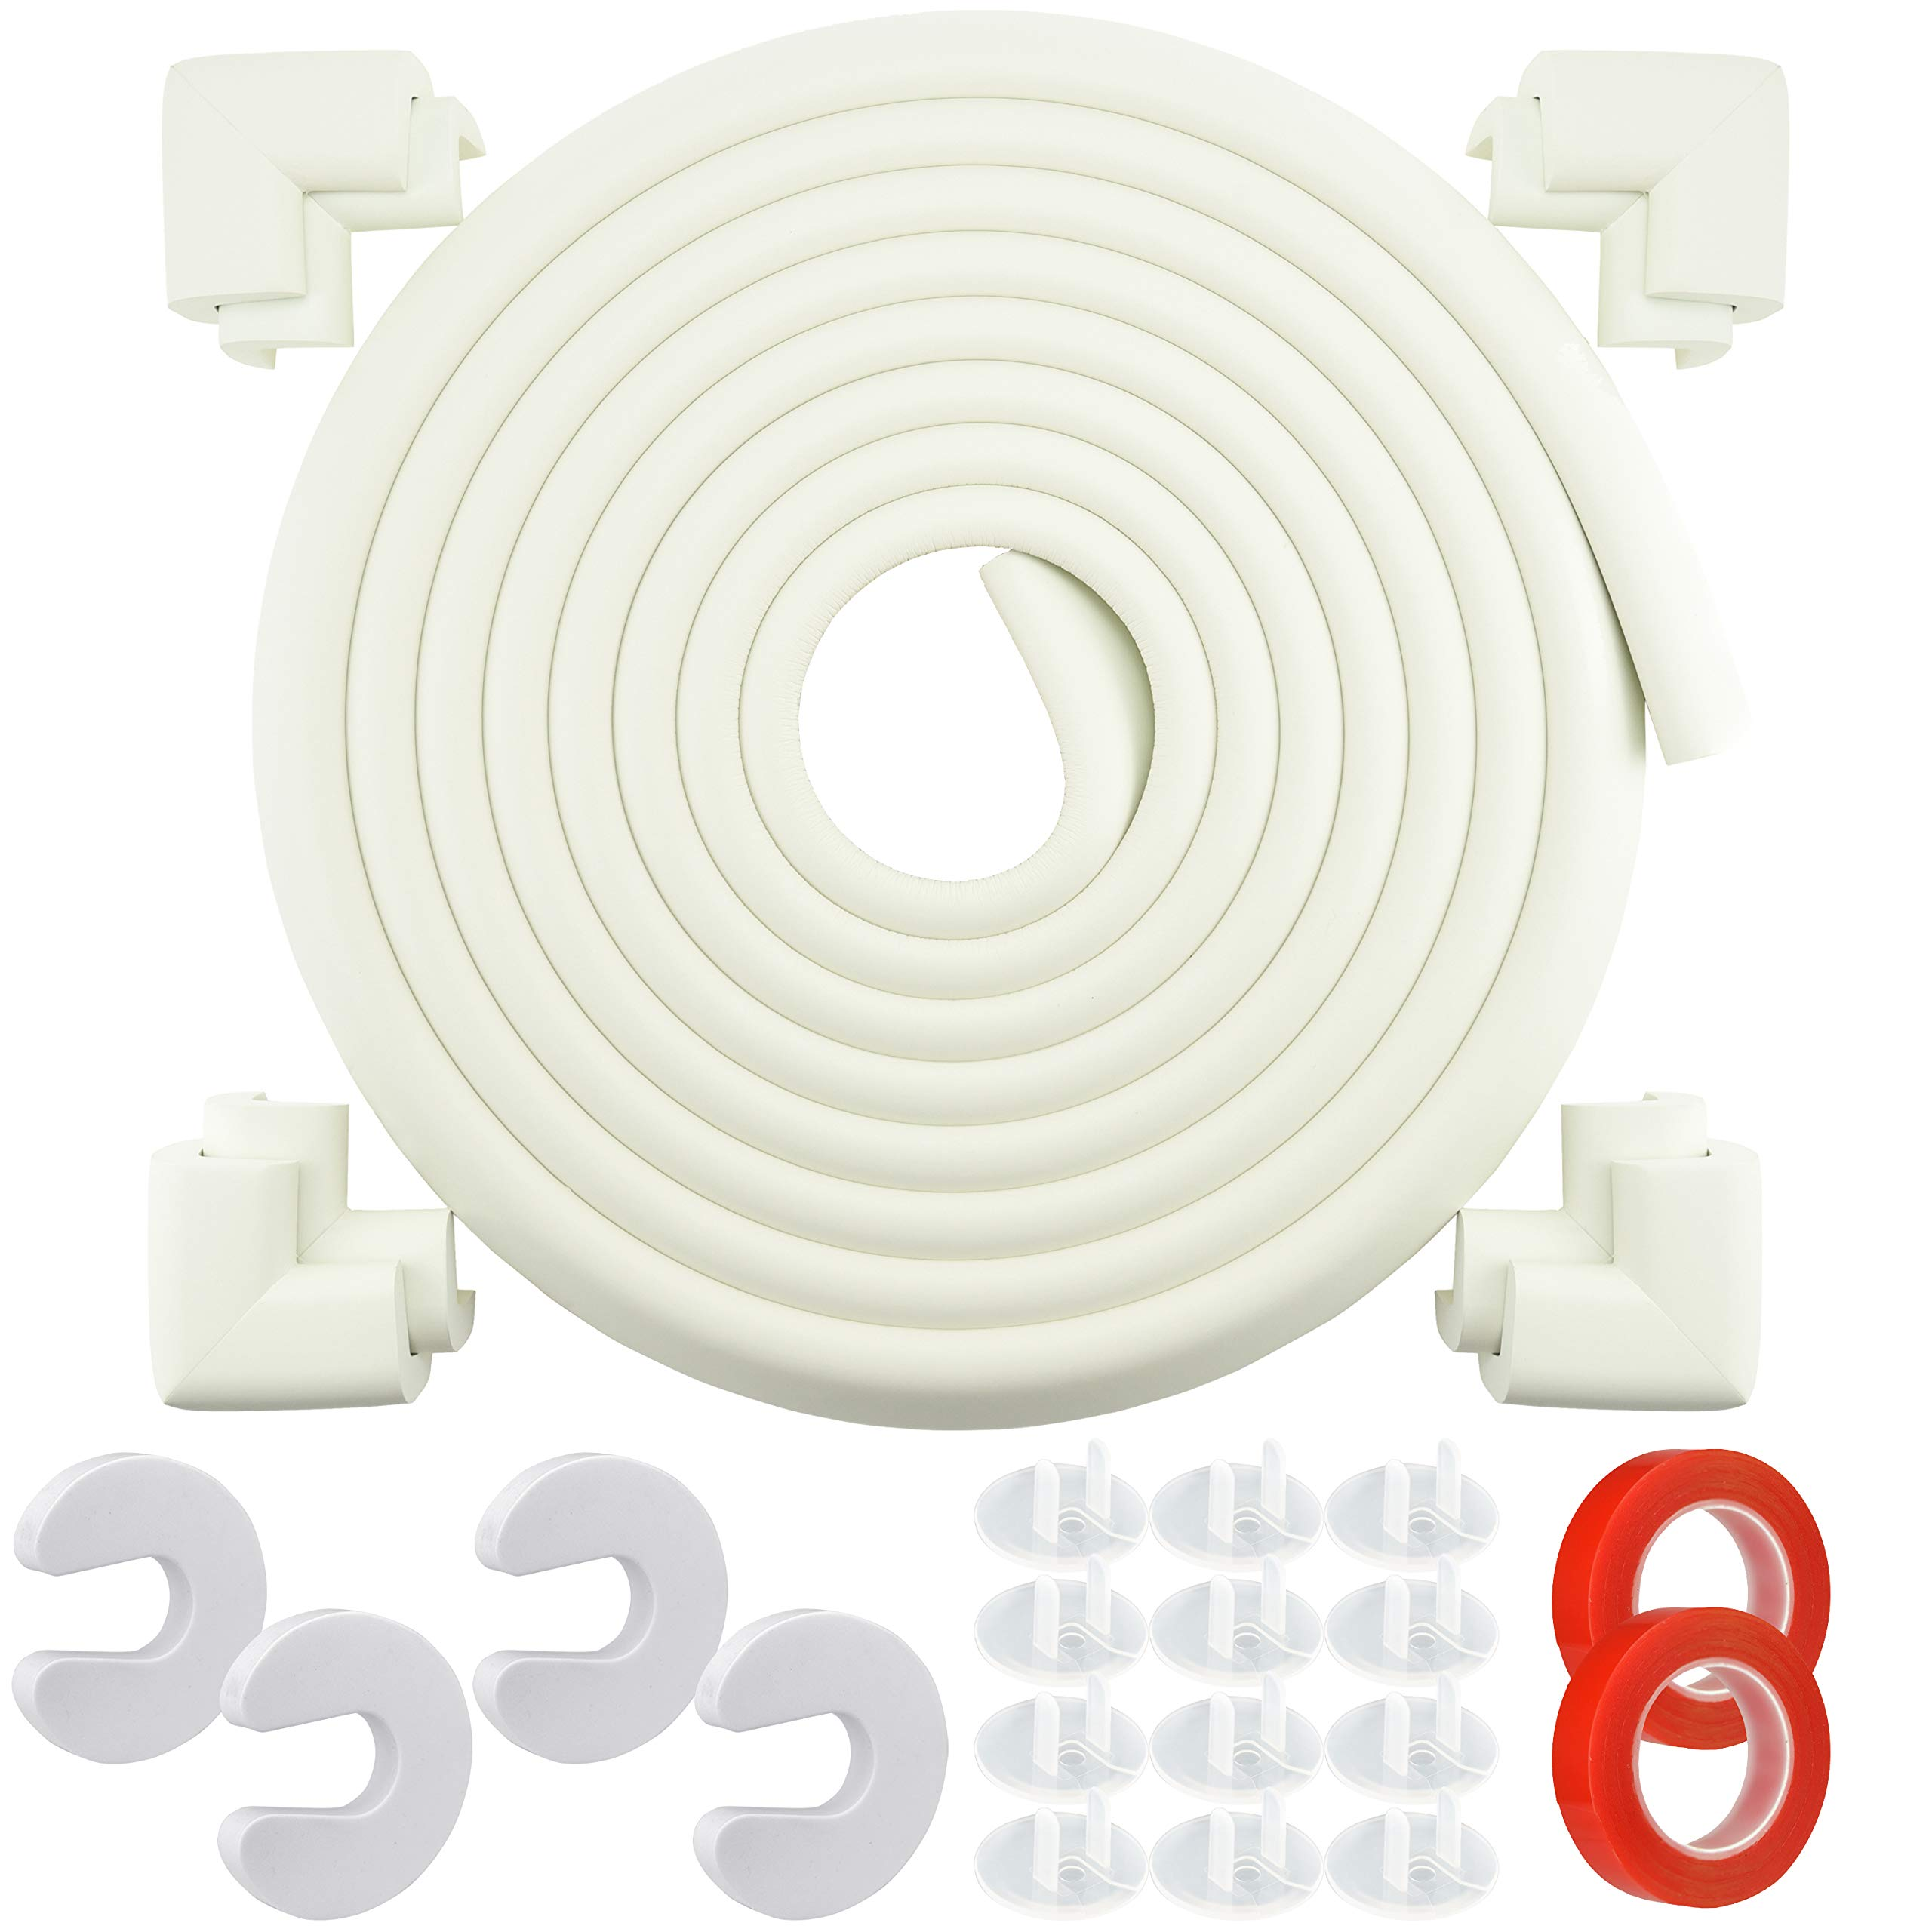 FiveSeasonStuff | Baby Proofing | Corner Protector Edge Guard | Child Safety Table Protectors | 17 ft Edge + 8 Corners [20 ft] | 4 Door Stoppers | 24 Outlet Plug Covers | 2 Acrylic Tapes | Cream White